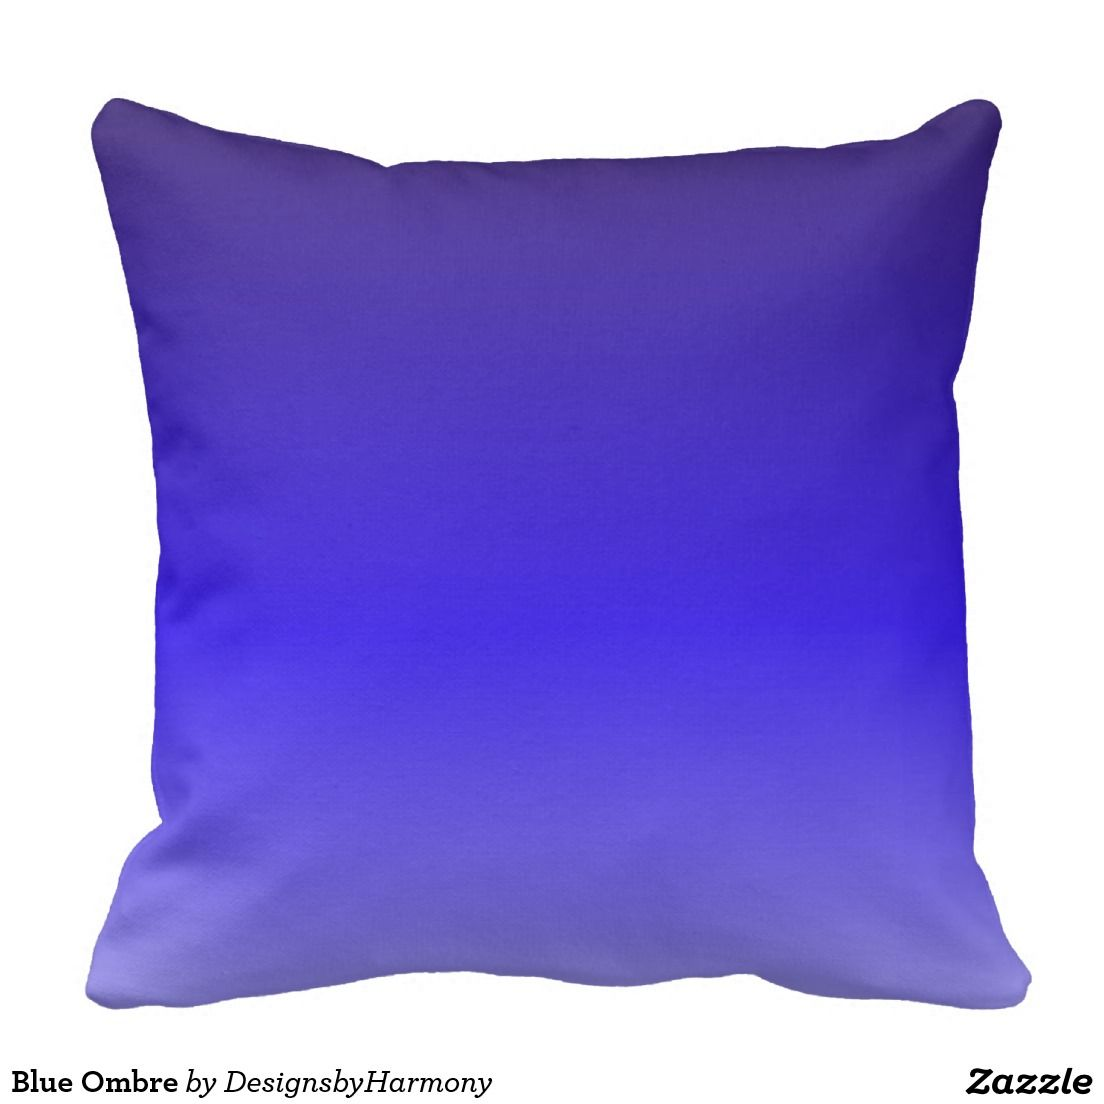 Blue Ombre Throw Pillow